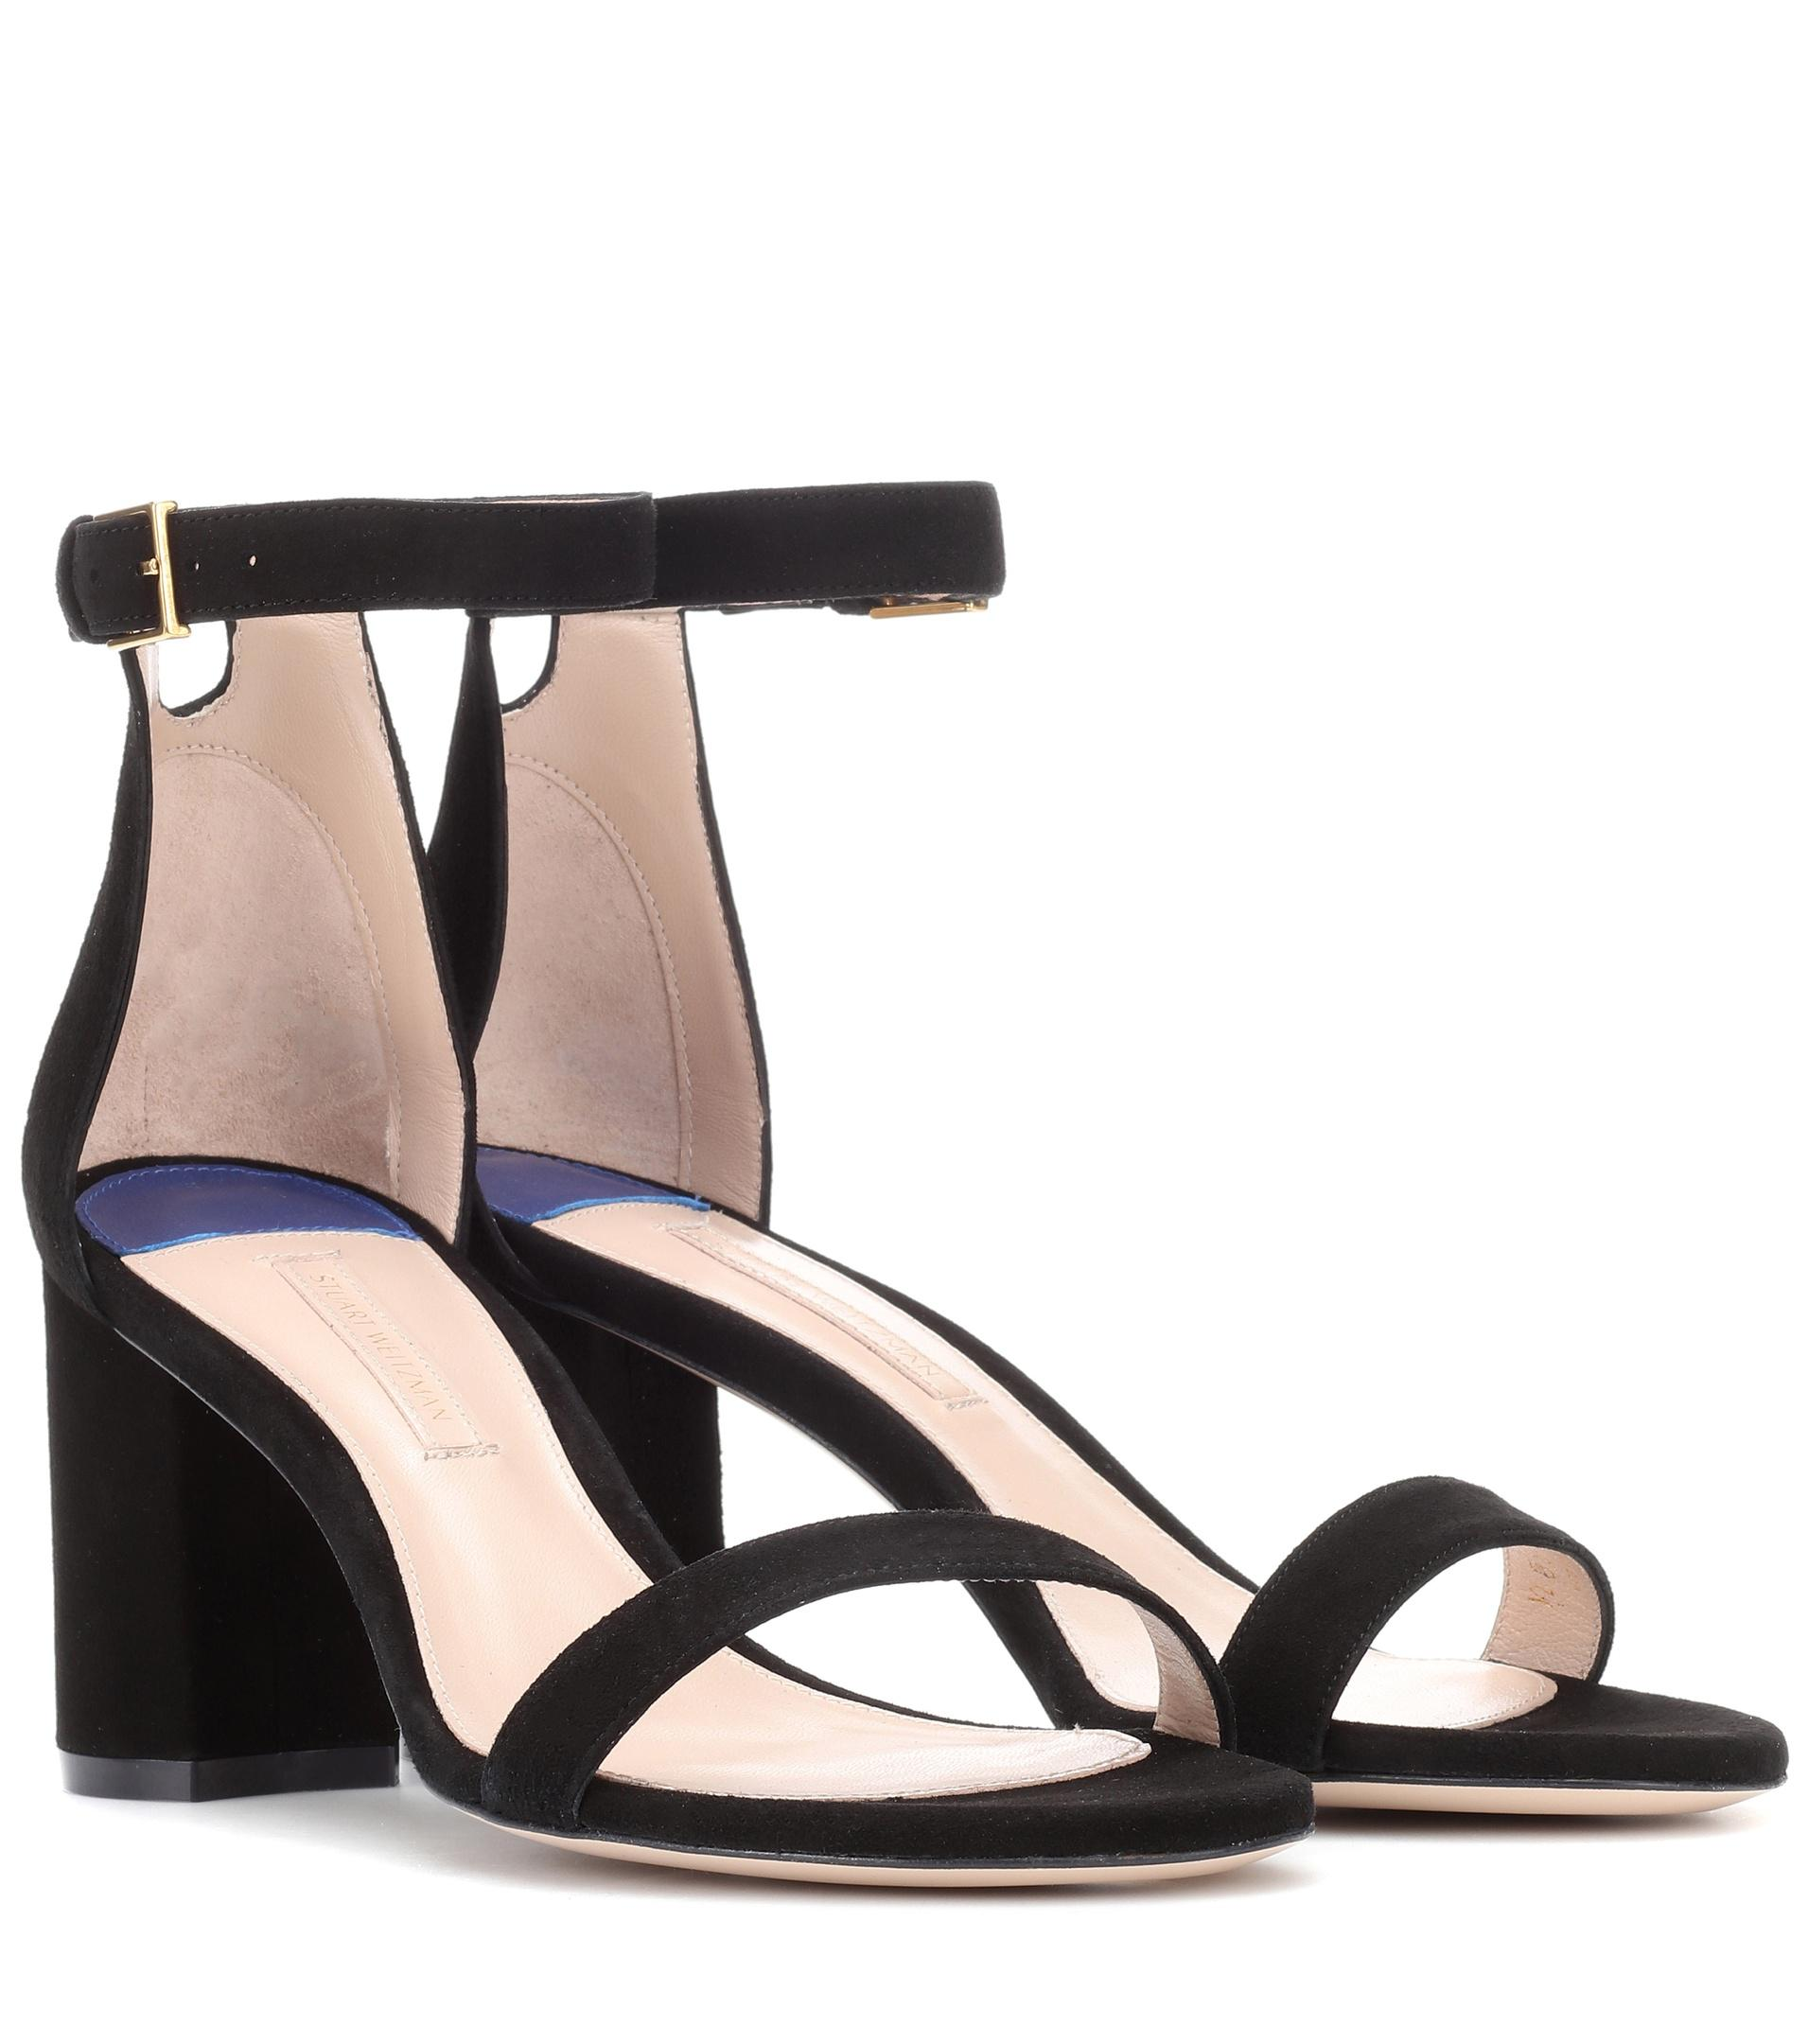 buy online with paypal Stuart Weitzman 75LessNudist suede sandals buy cheap free shipping clearance from china cheap buy authentic cQgcG7qP6U